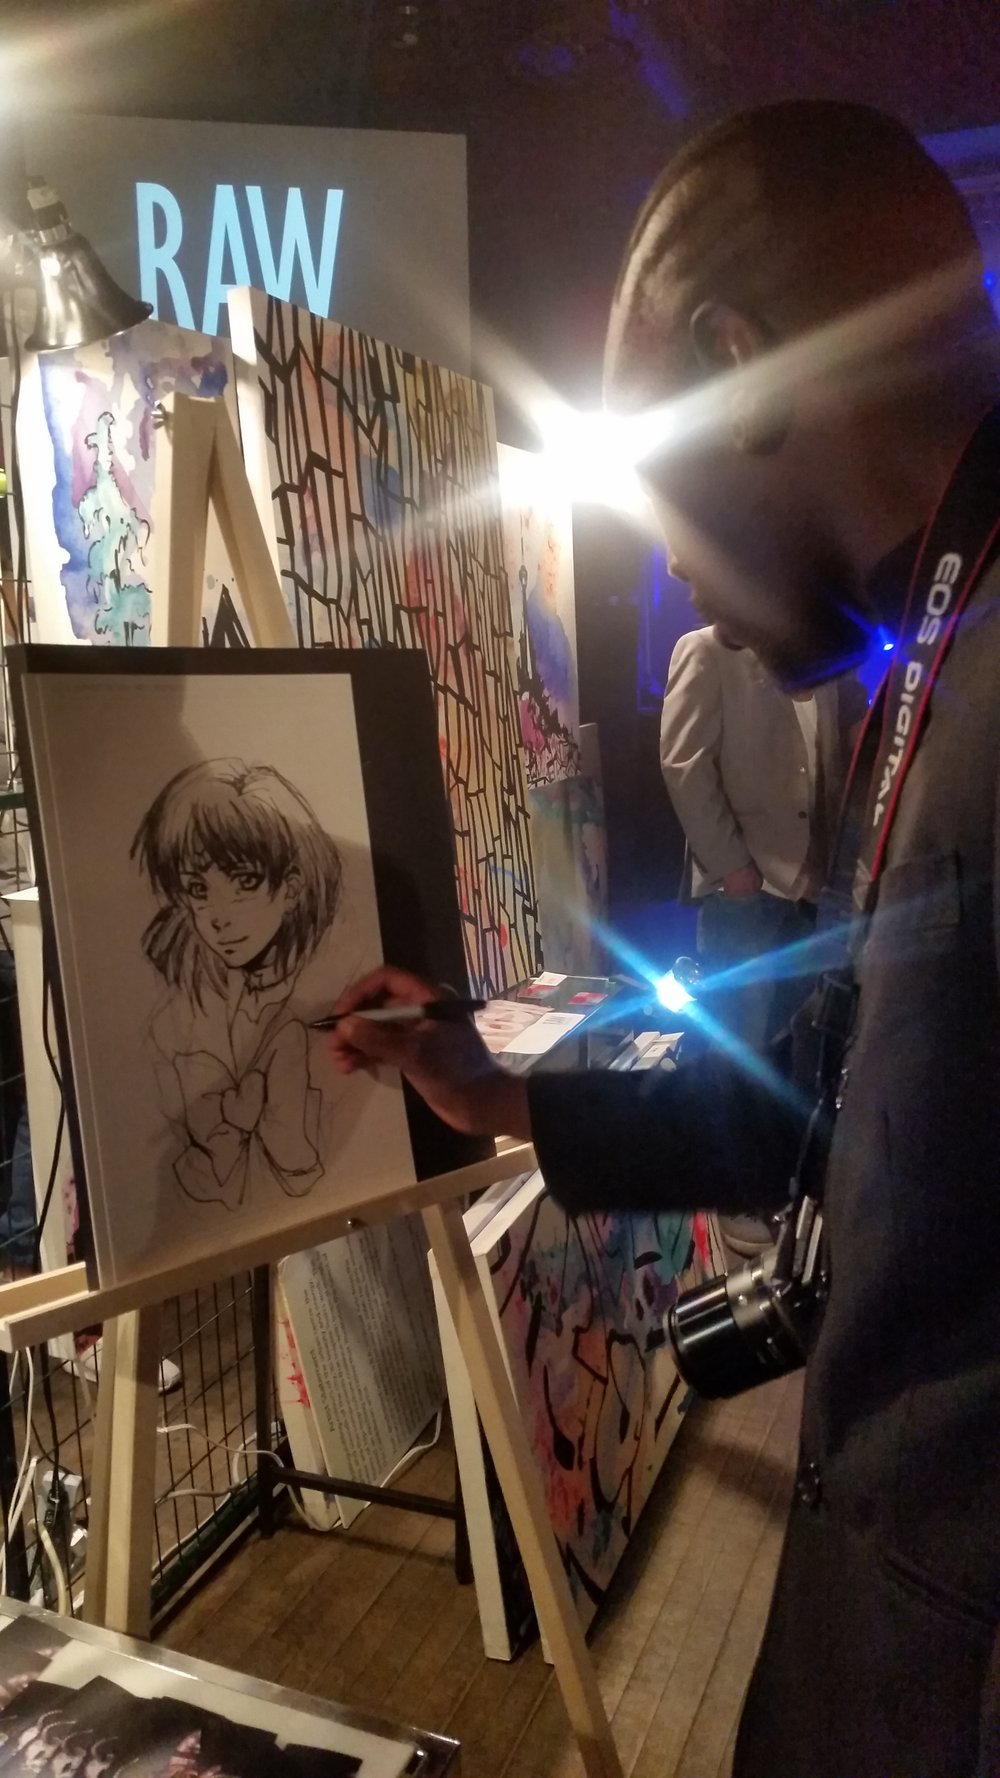 Strike Boogie The Artist working on art during the show. I always enjoy watching something being created from nothing.